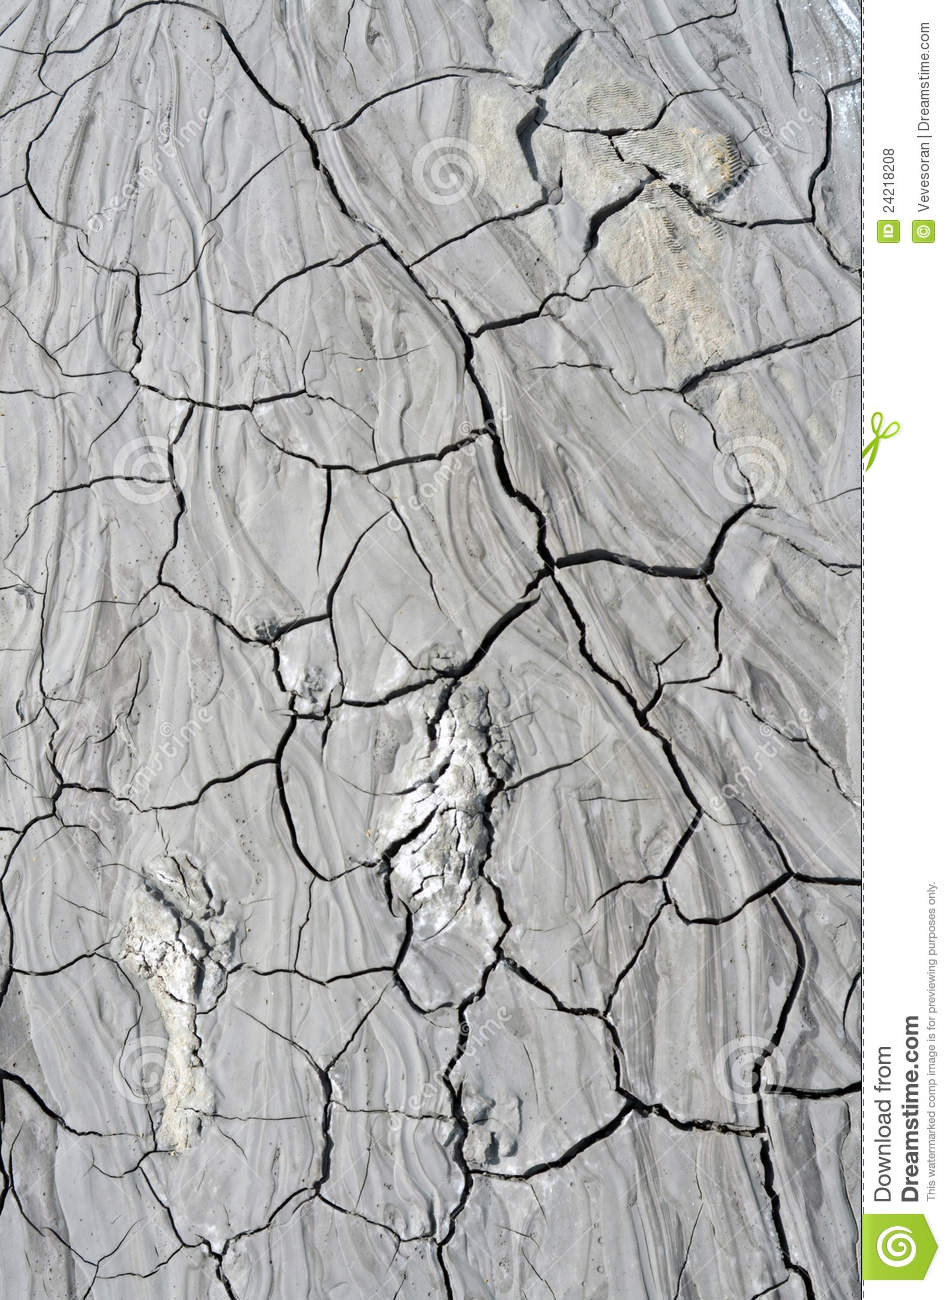 soil details royalty free stock photos image 24218208